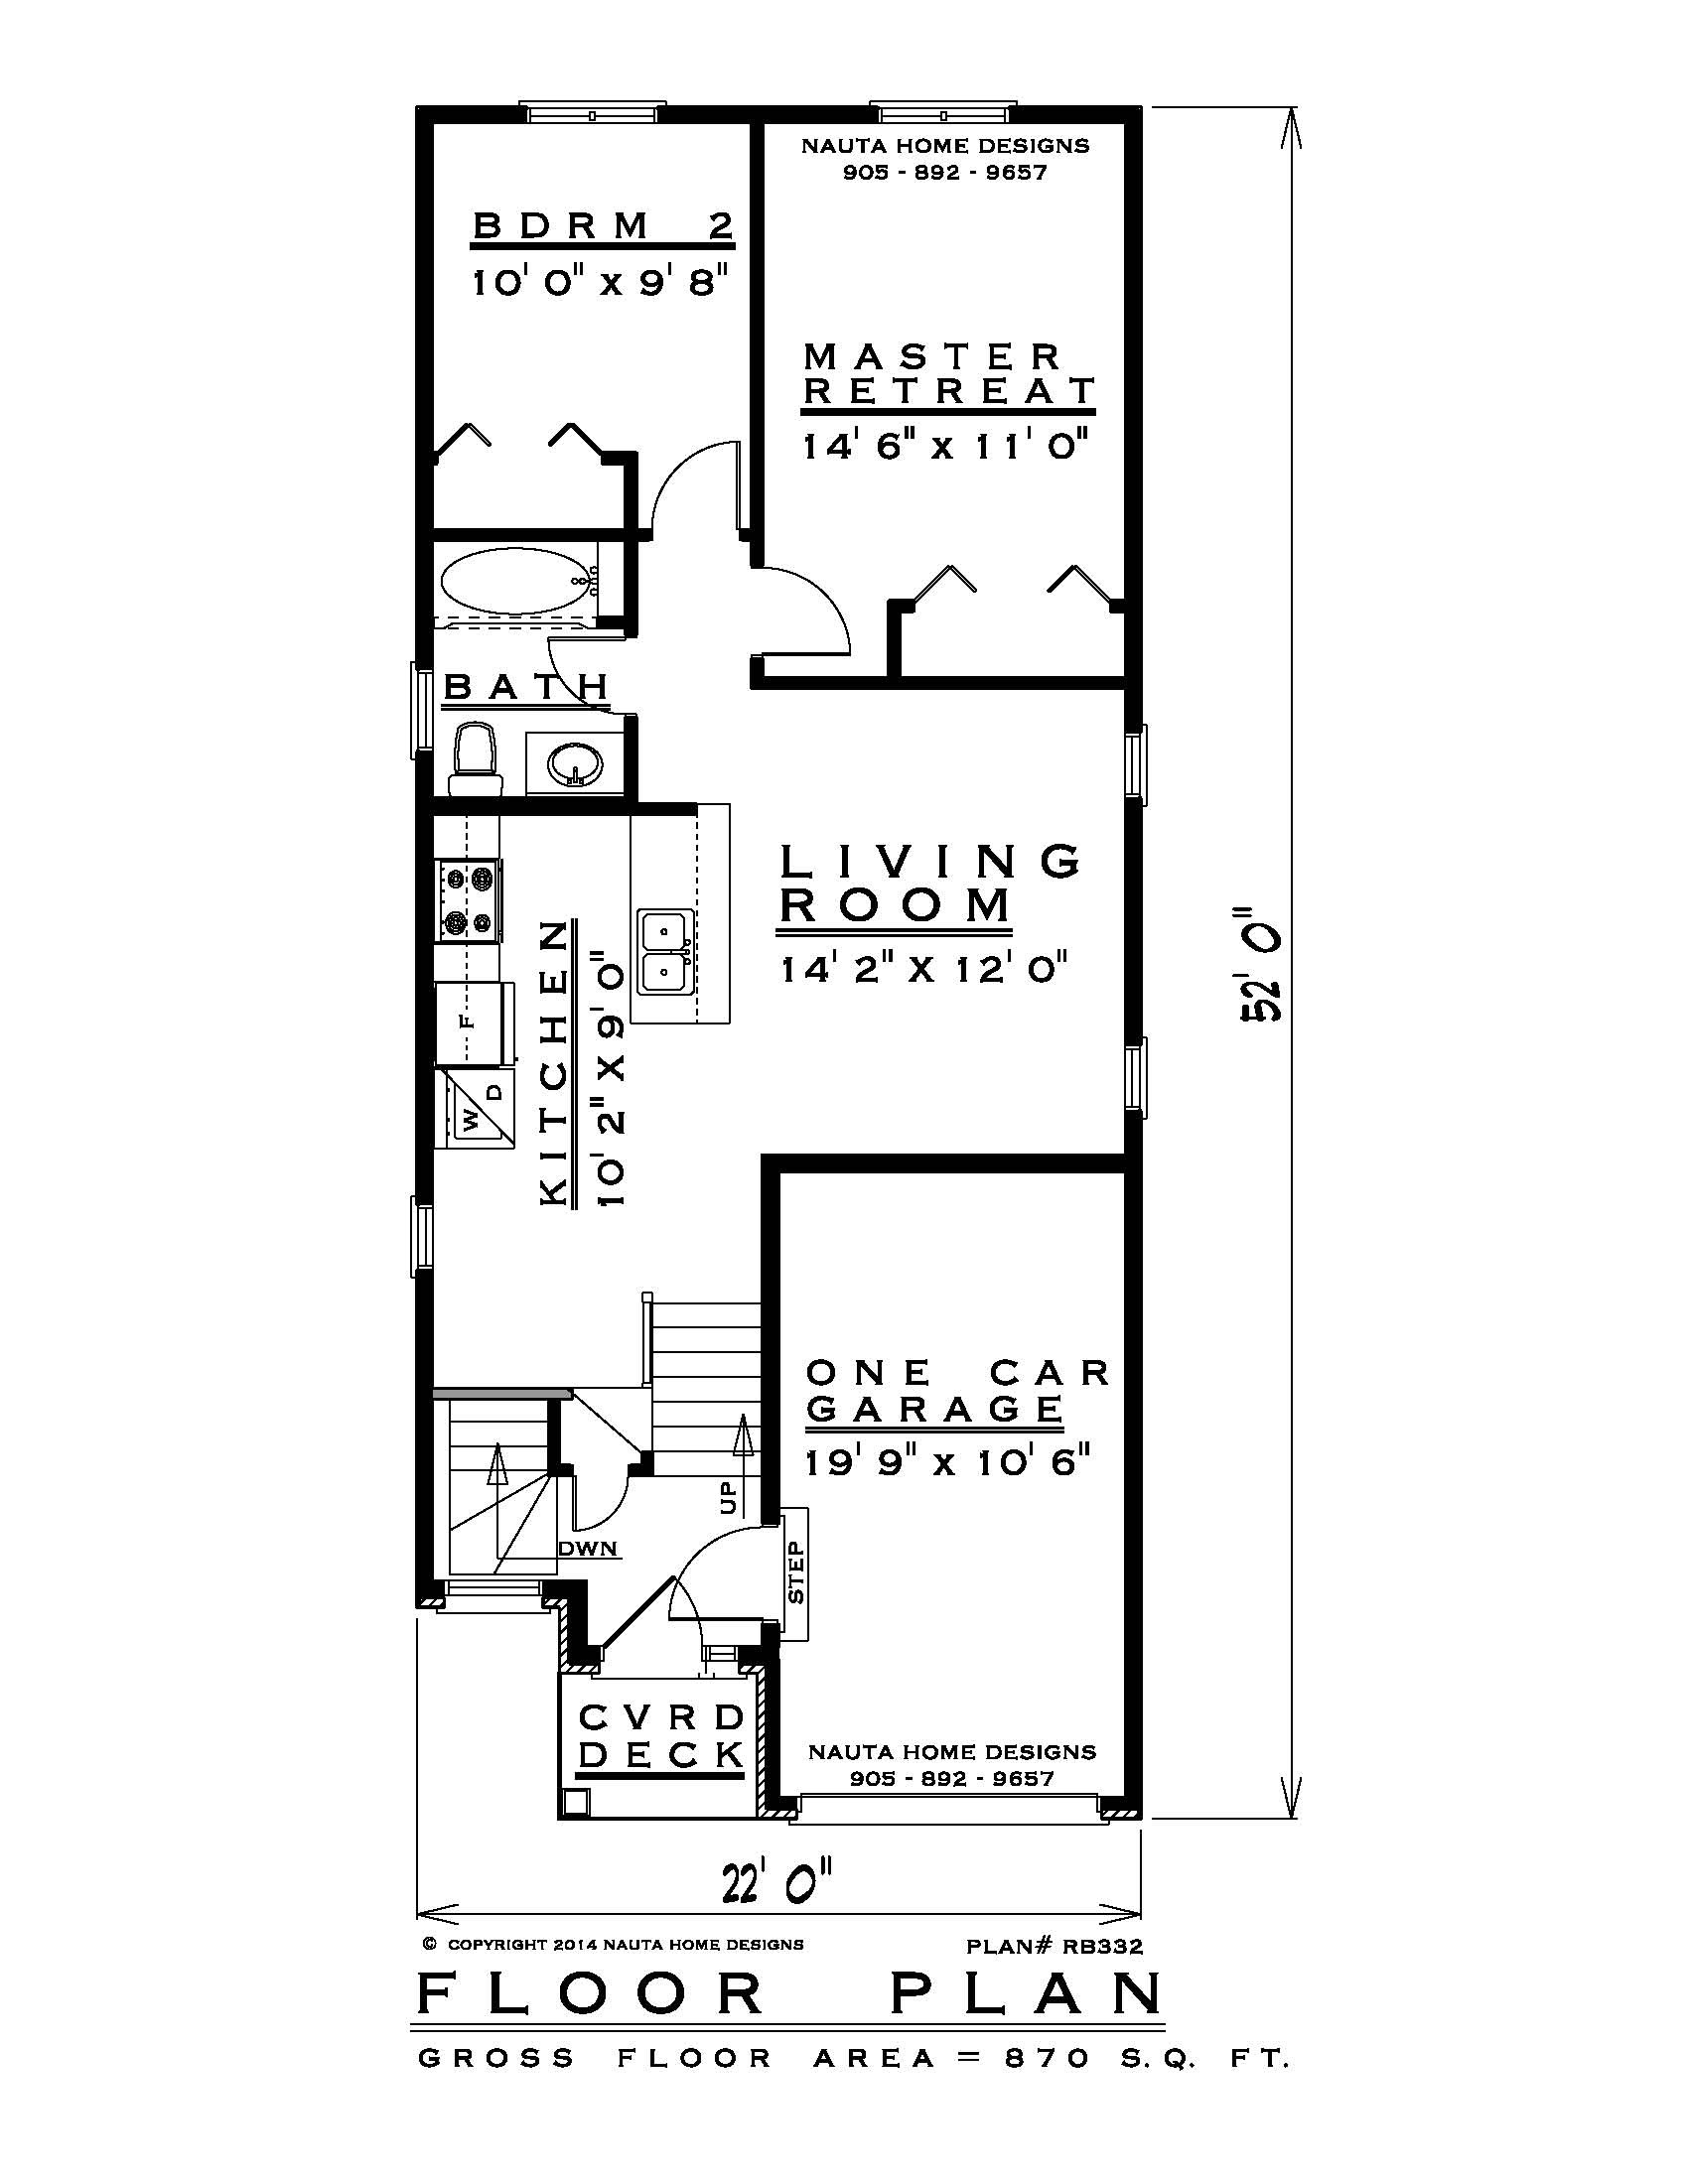 Canadian House Plans with Photos New Raised Bungalow House Plan Rb332 Floor Plan Nauta Home